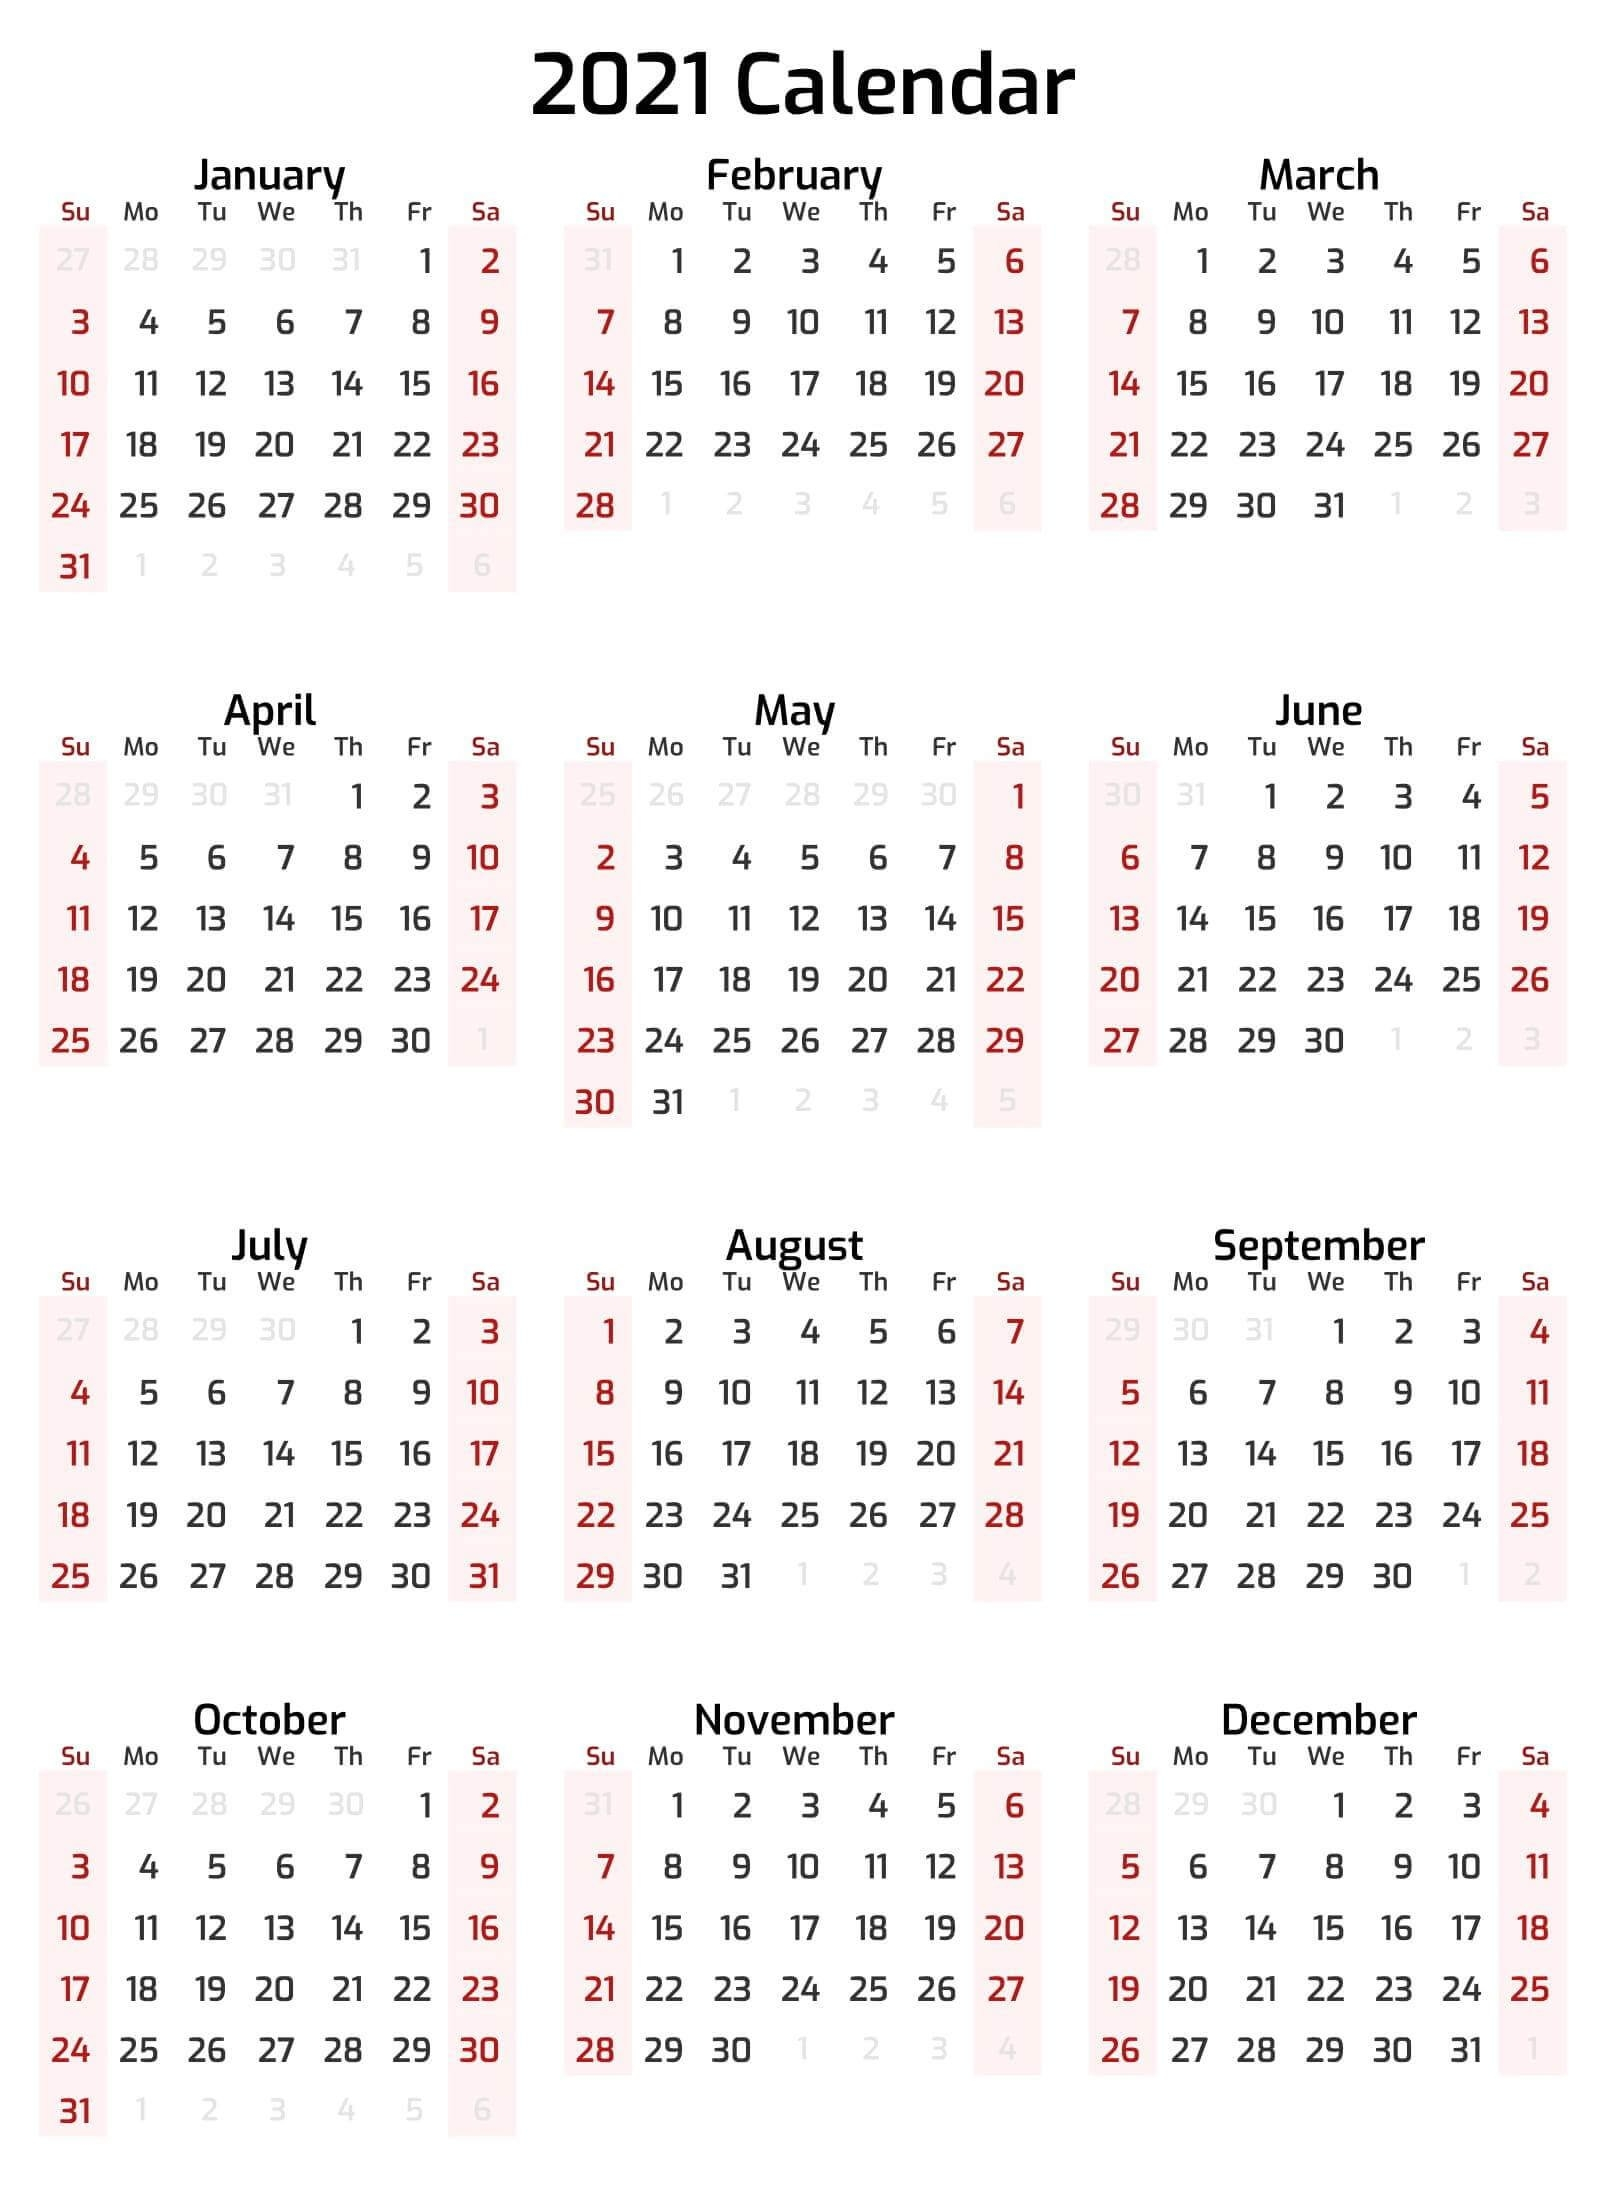 Full Year Printable Calendar 2021 With Notes   Free Printable Calendar Shop pertaining to Calendar 2019 2021 2021 Printable Free